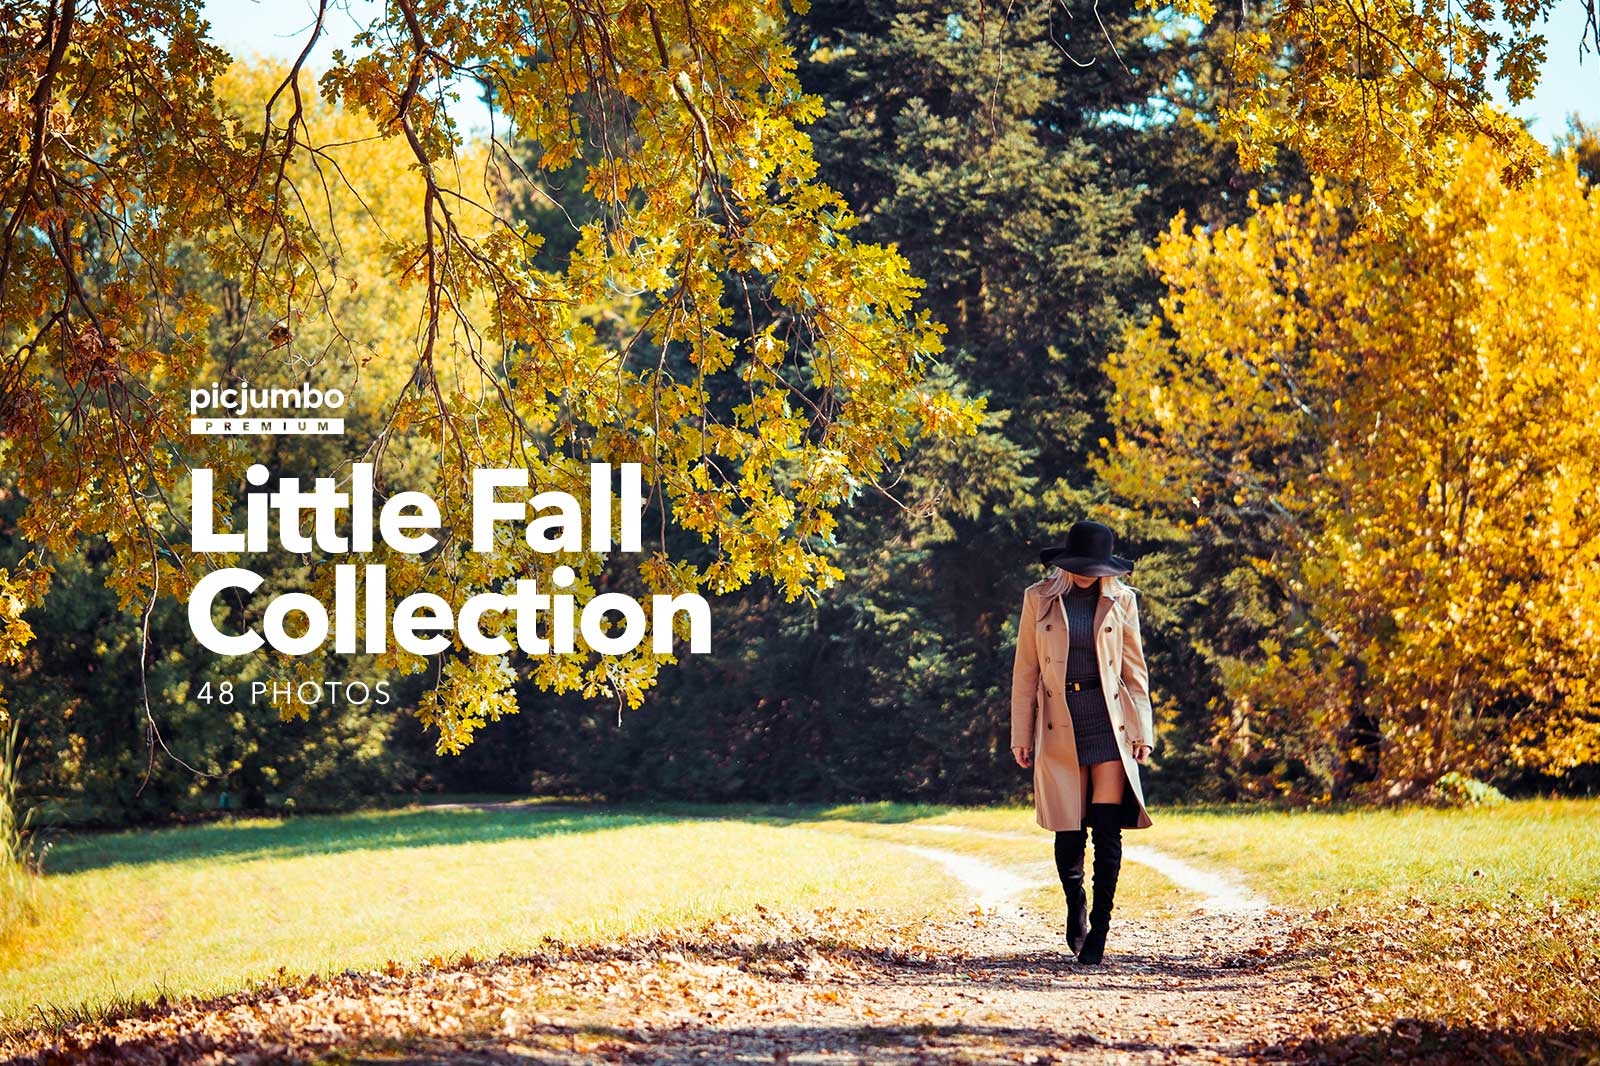 Join PREMIUM and get full collection now: Little Fall Collection